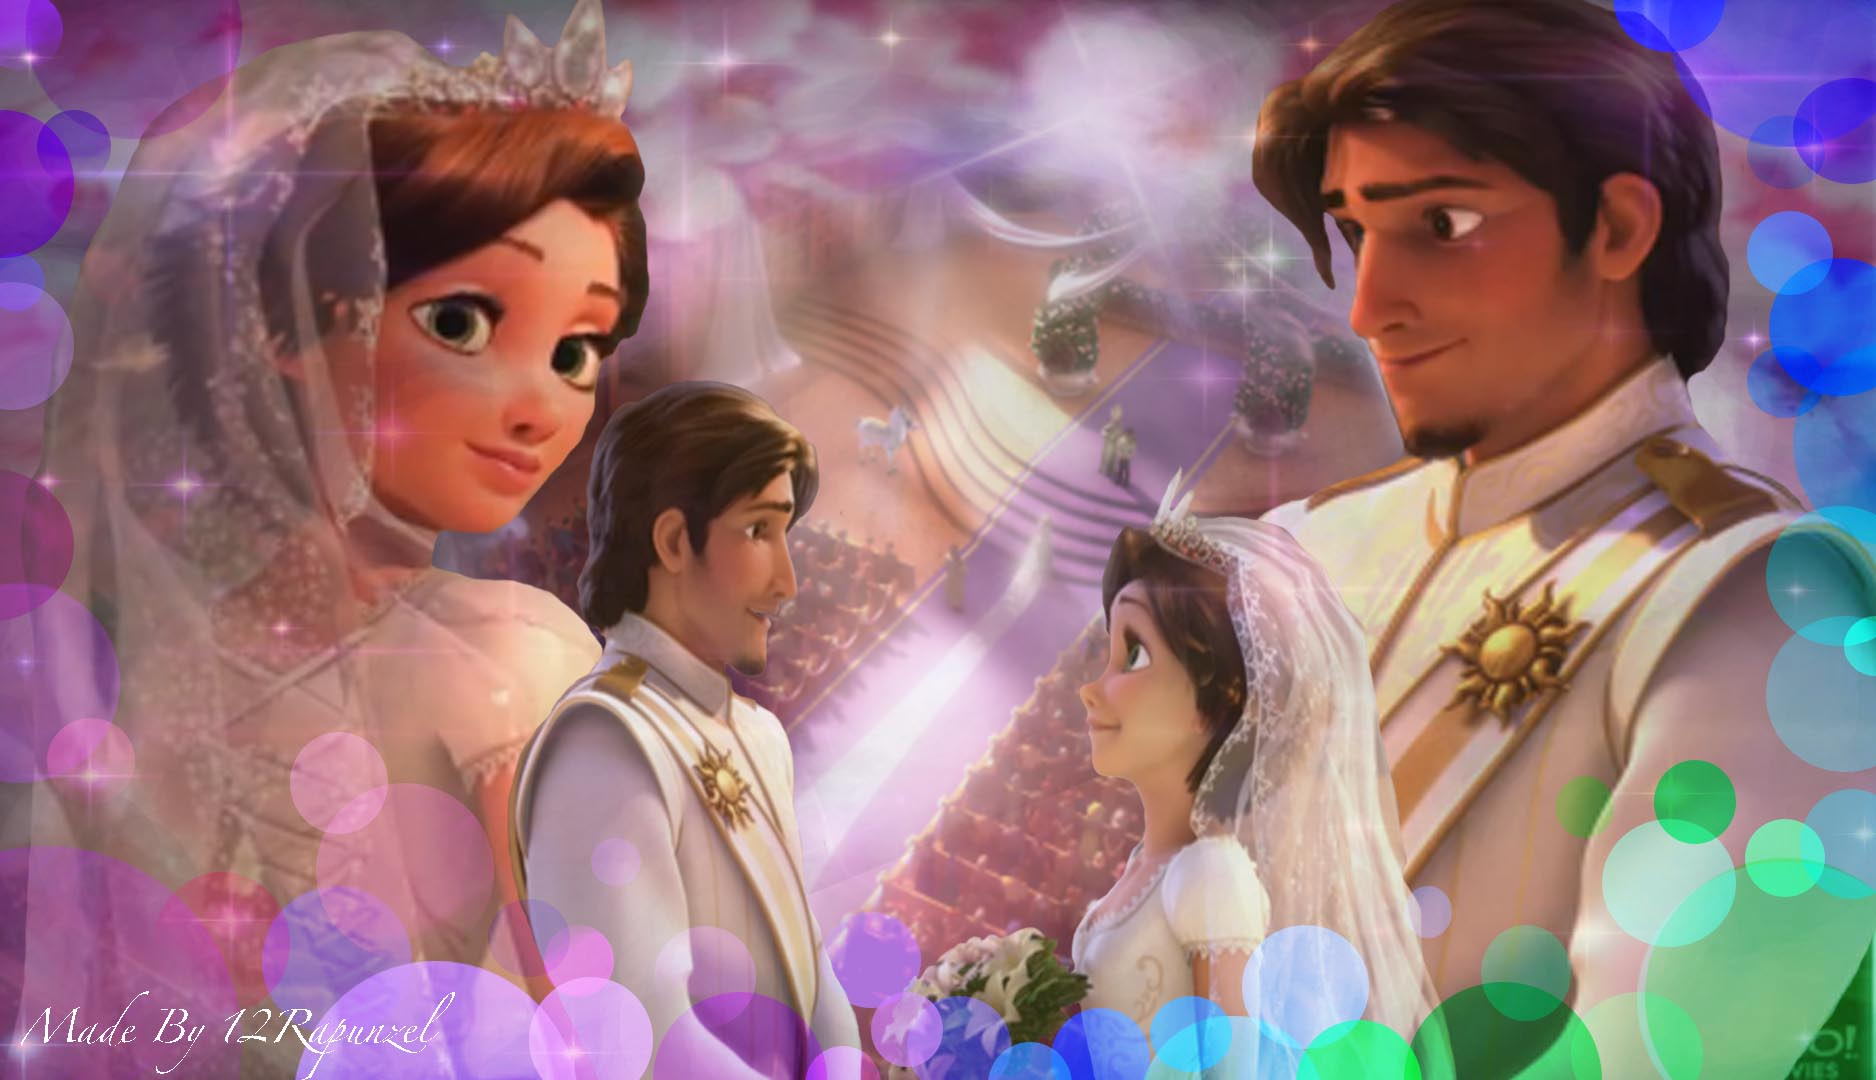 https://i1.wp.com/images5.fanpop.com/image/photos/30200000/Tangled-Ever-After-Wedding-rapunzel-fitzherbert-art-12rapunzel-30270107-1876-1080.jpg